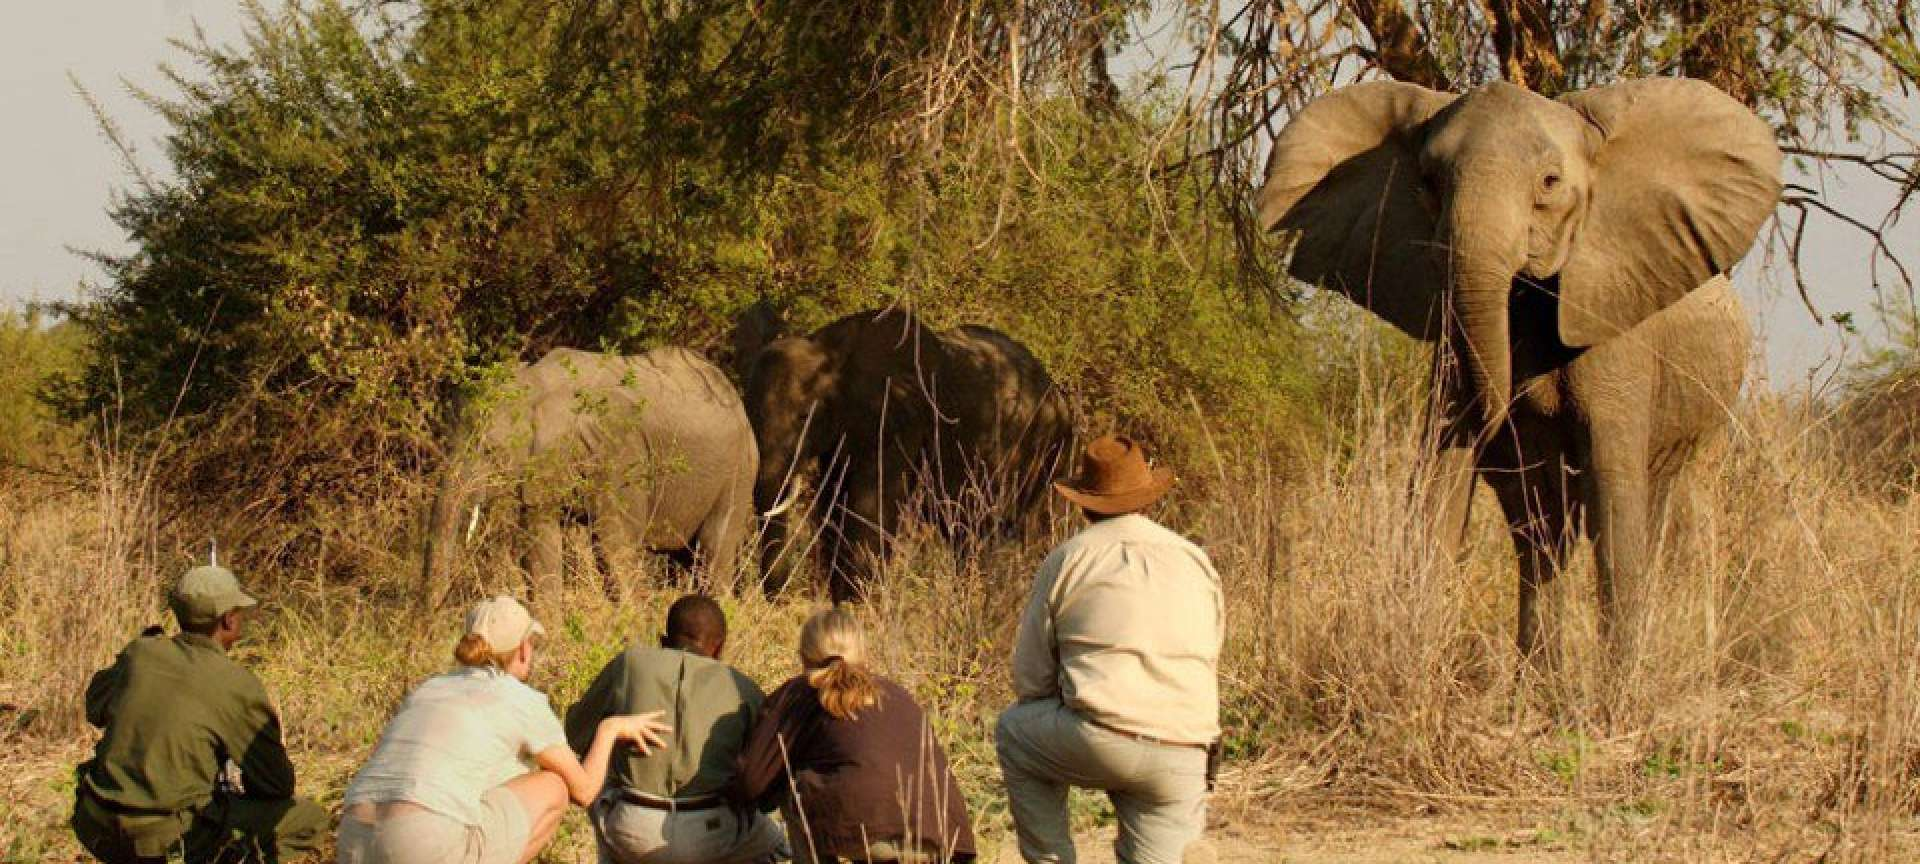 Luxury safari in the Kruger National Park - Africa Wildlife Safaris